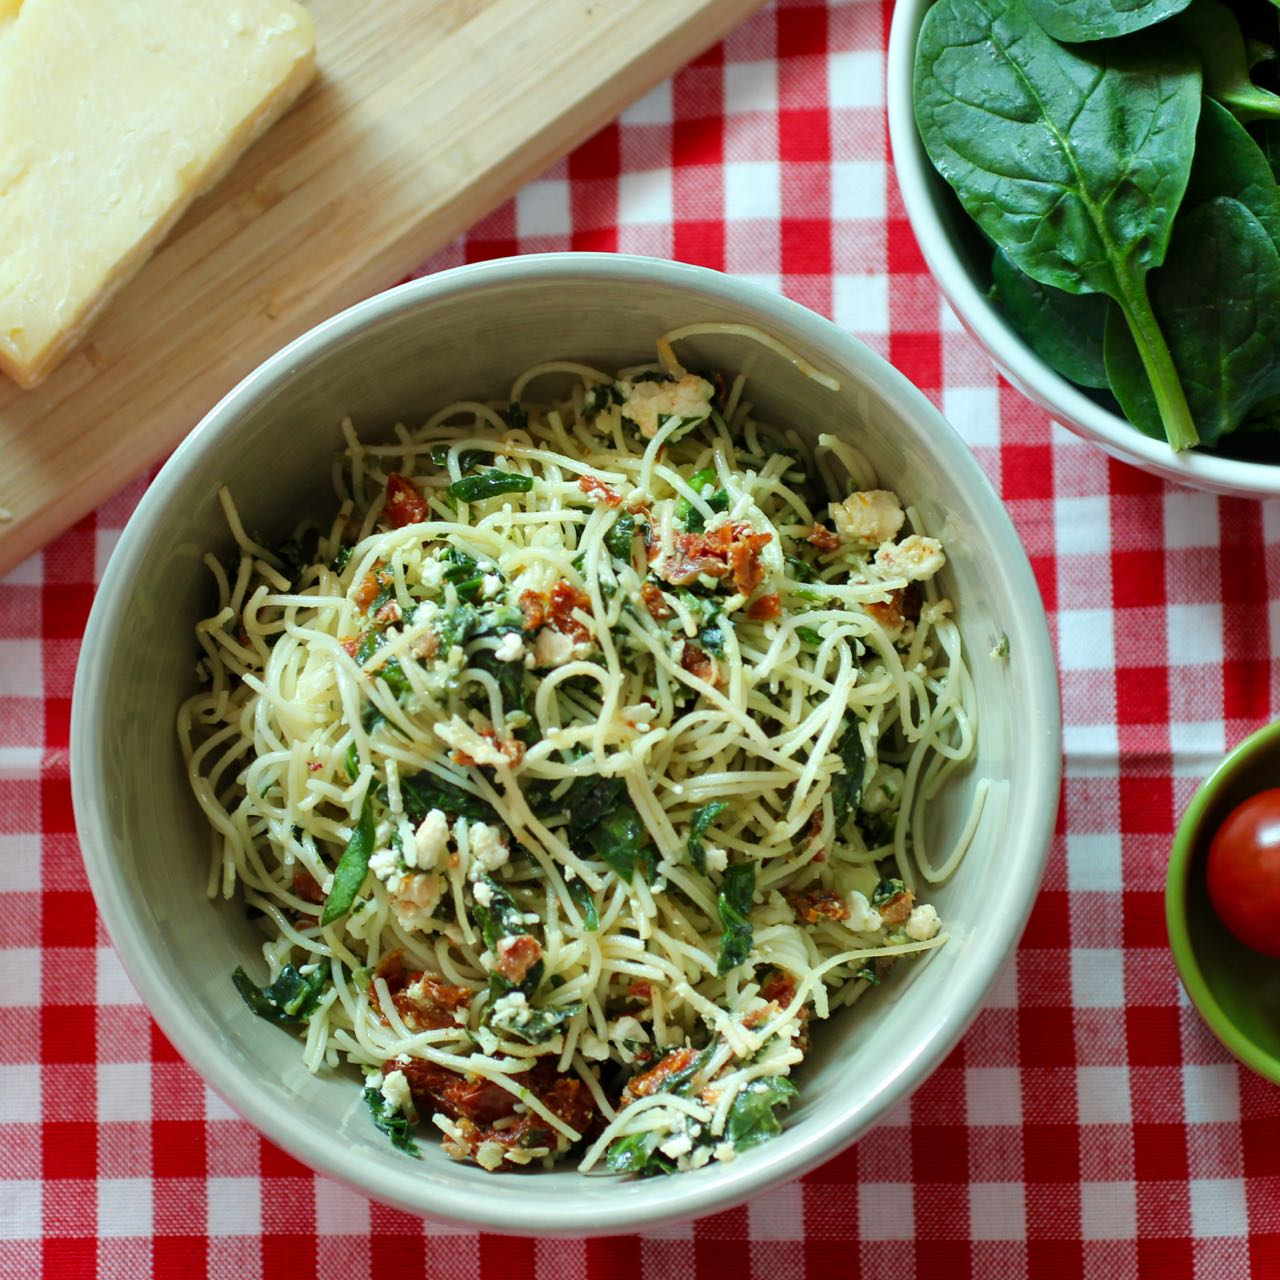 ... Giraffe: Angel hair pasta with feta, sun-dried tomatoes and spinach